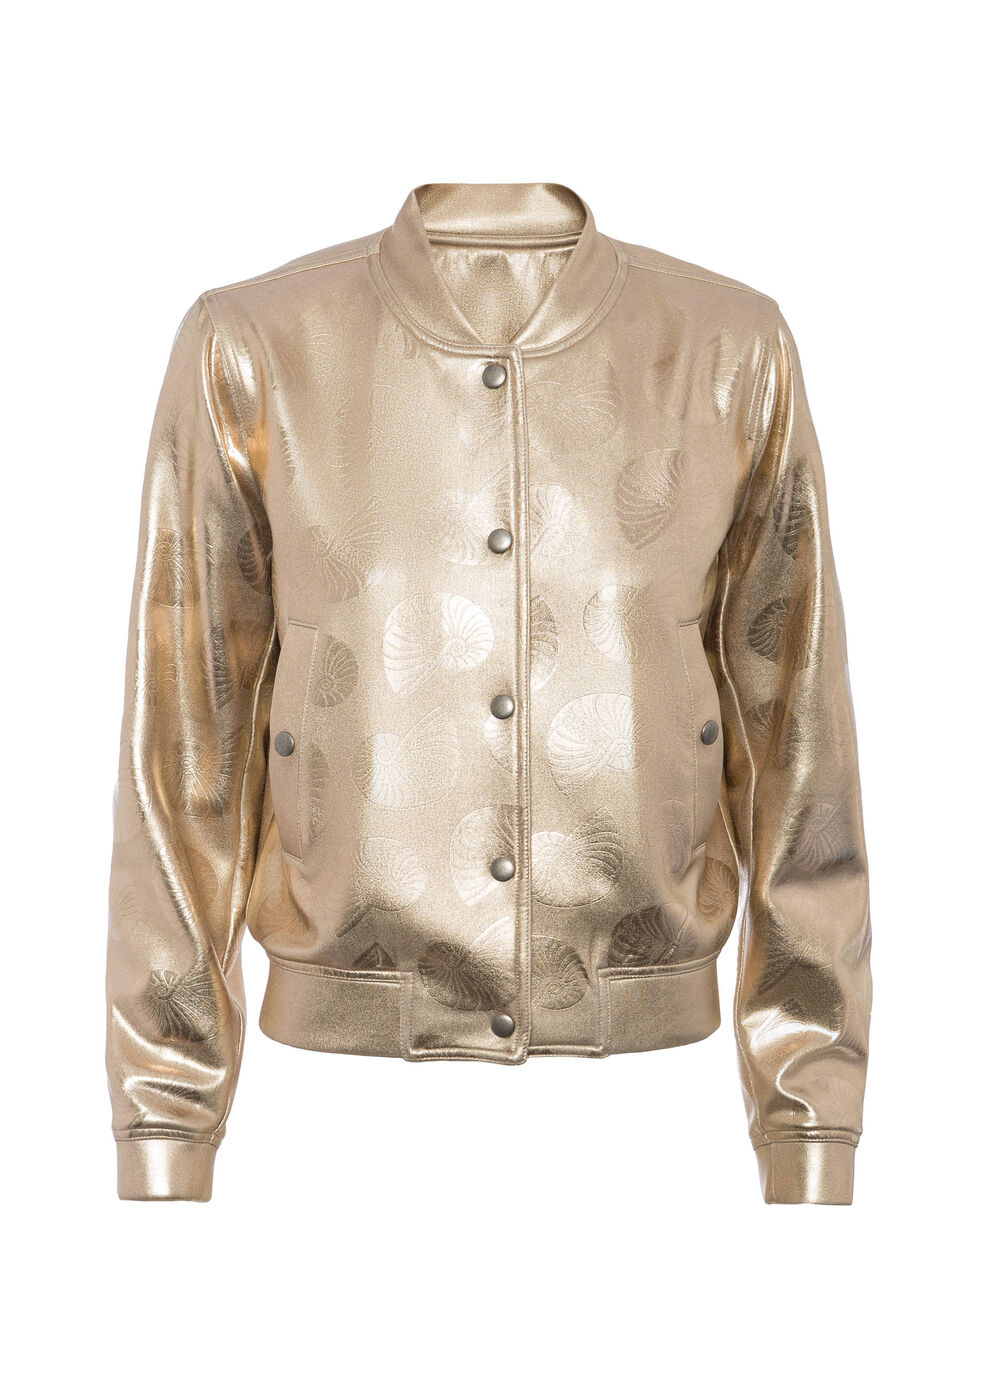 OVS Arts of Italy gold-coated bomber jacket